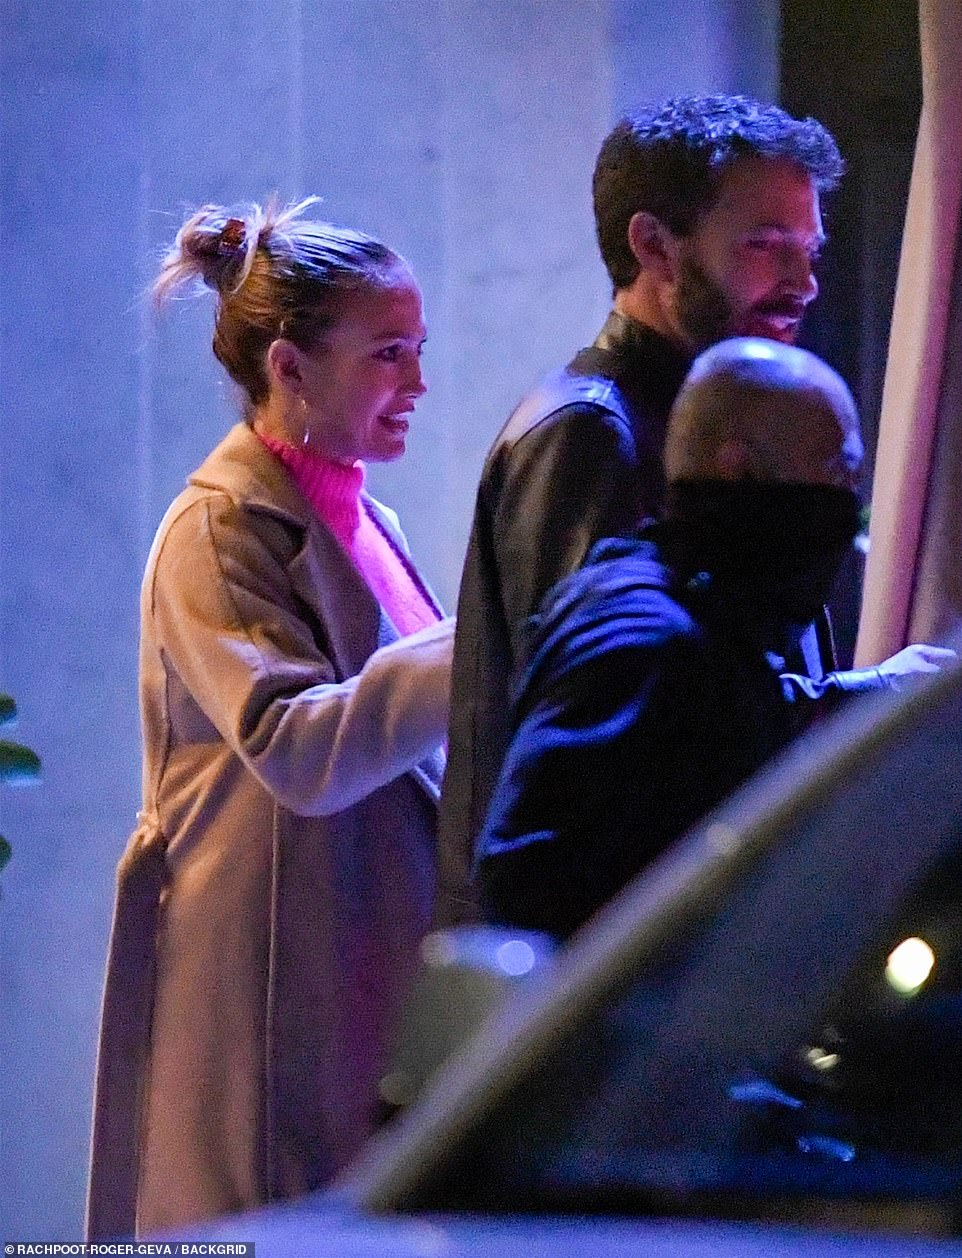 Classic: She wore her highlighted strands in a stylish messy bun and accentuated her naturally beautiful features with a strategic amount of makeup